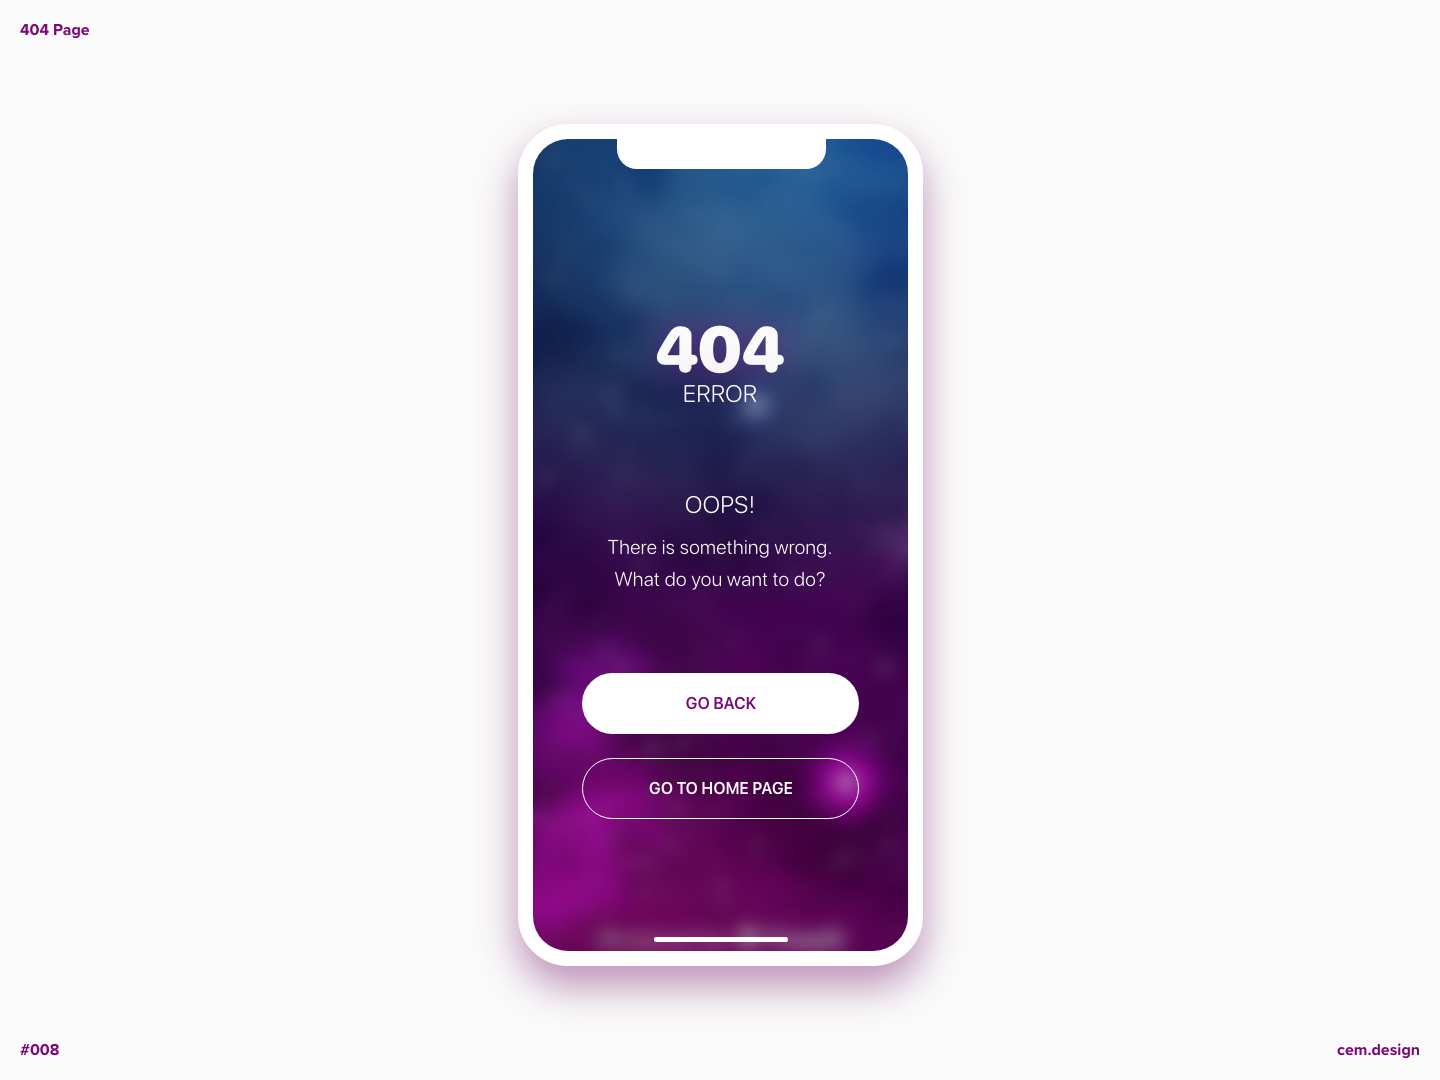 Day 008 - 404 Page adobe photoshop 404 page daily ui daily challange adobe xd ui design